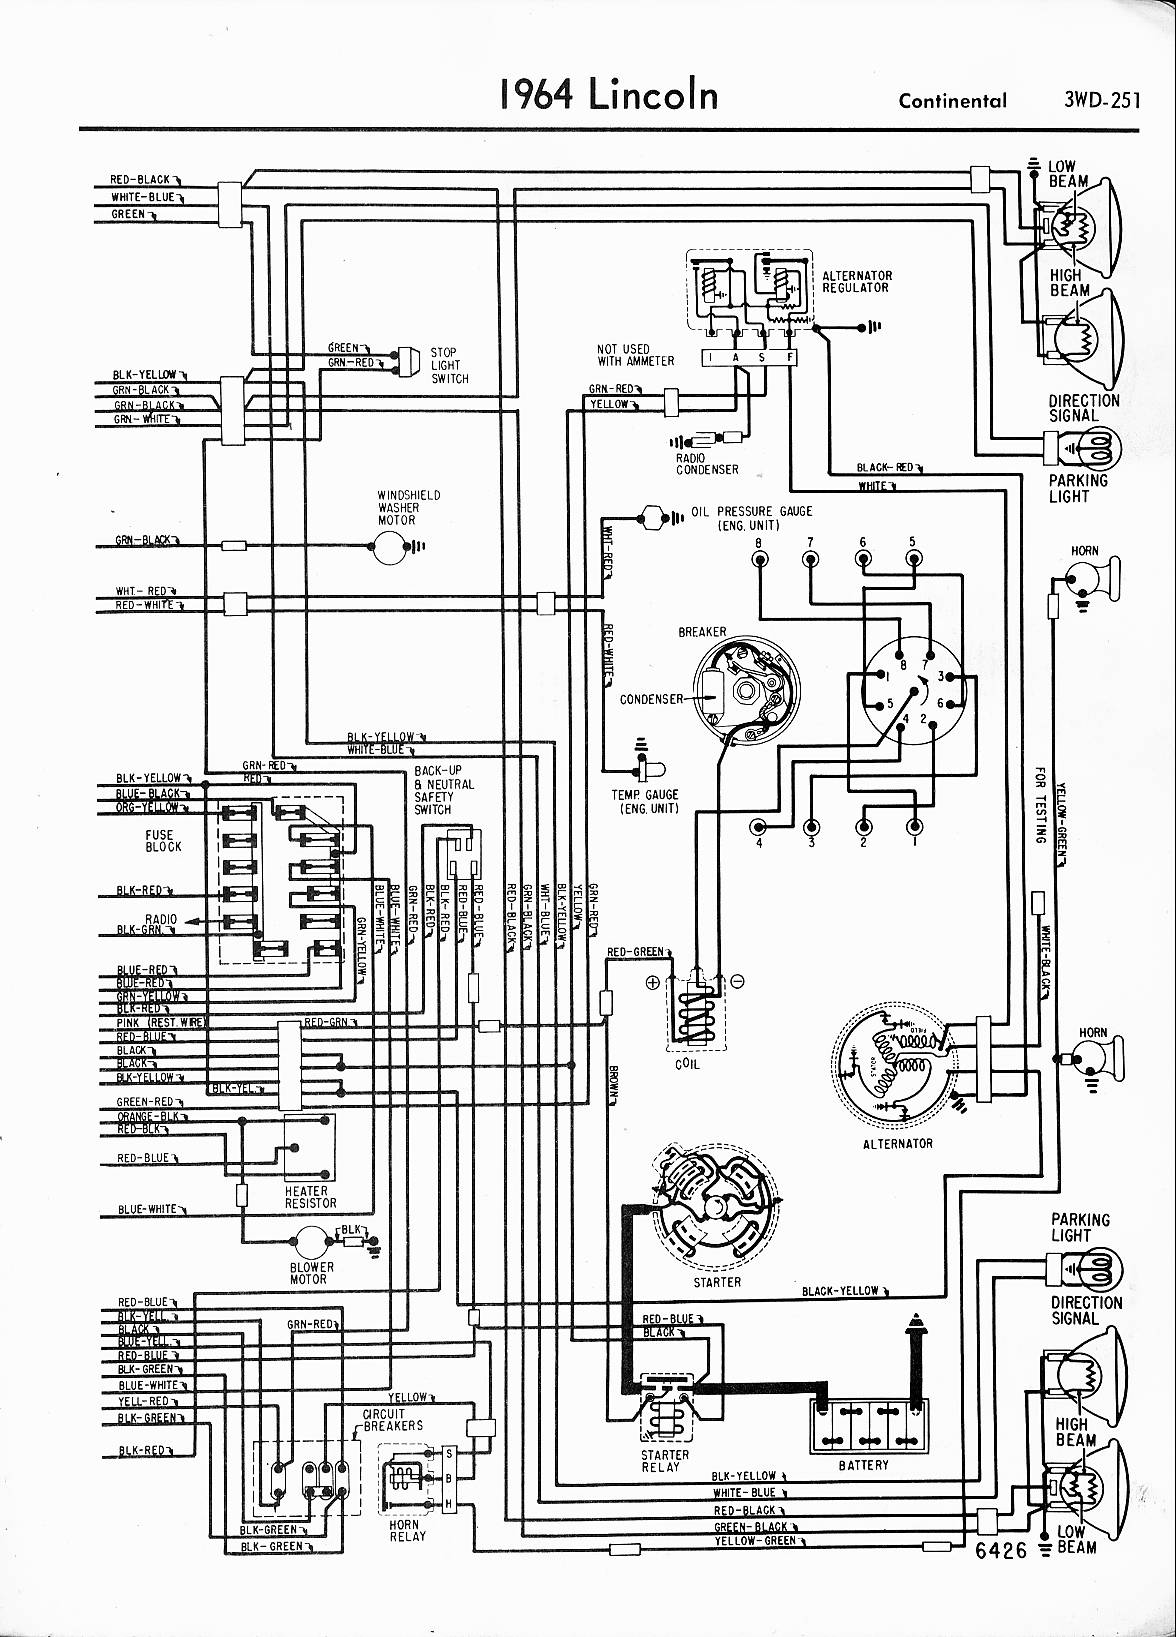 1959 Lincoln Wiring Diagram Good 1st 1998 Continental Fuse Box Diagrams 1957 1965 Rh Oldcarmanualproject Com Navigator